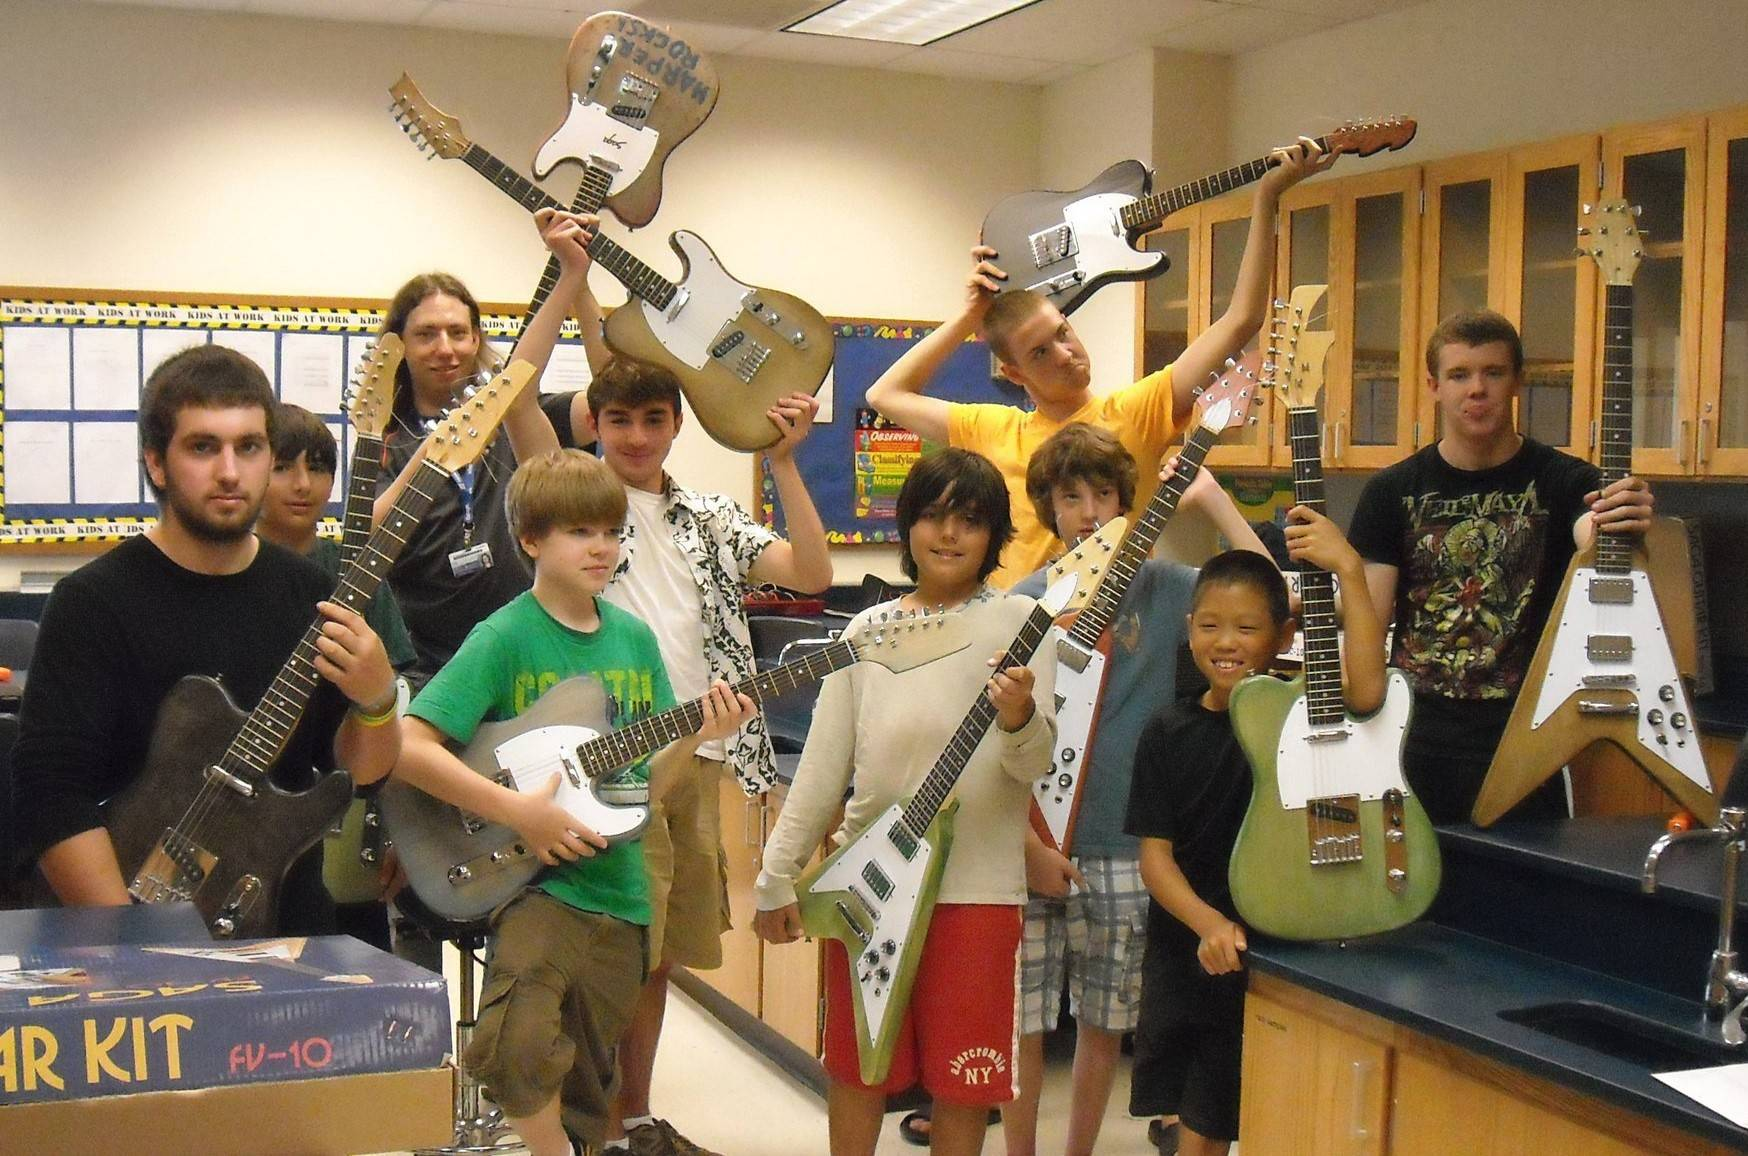 InZone students in the Build Your Own Guitar class show off their work.